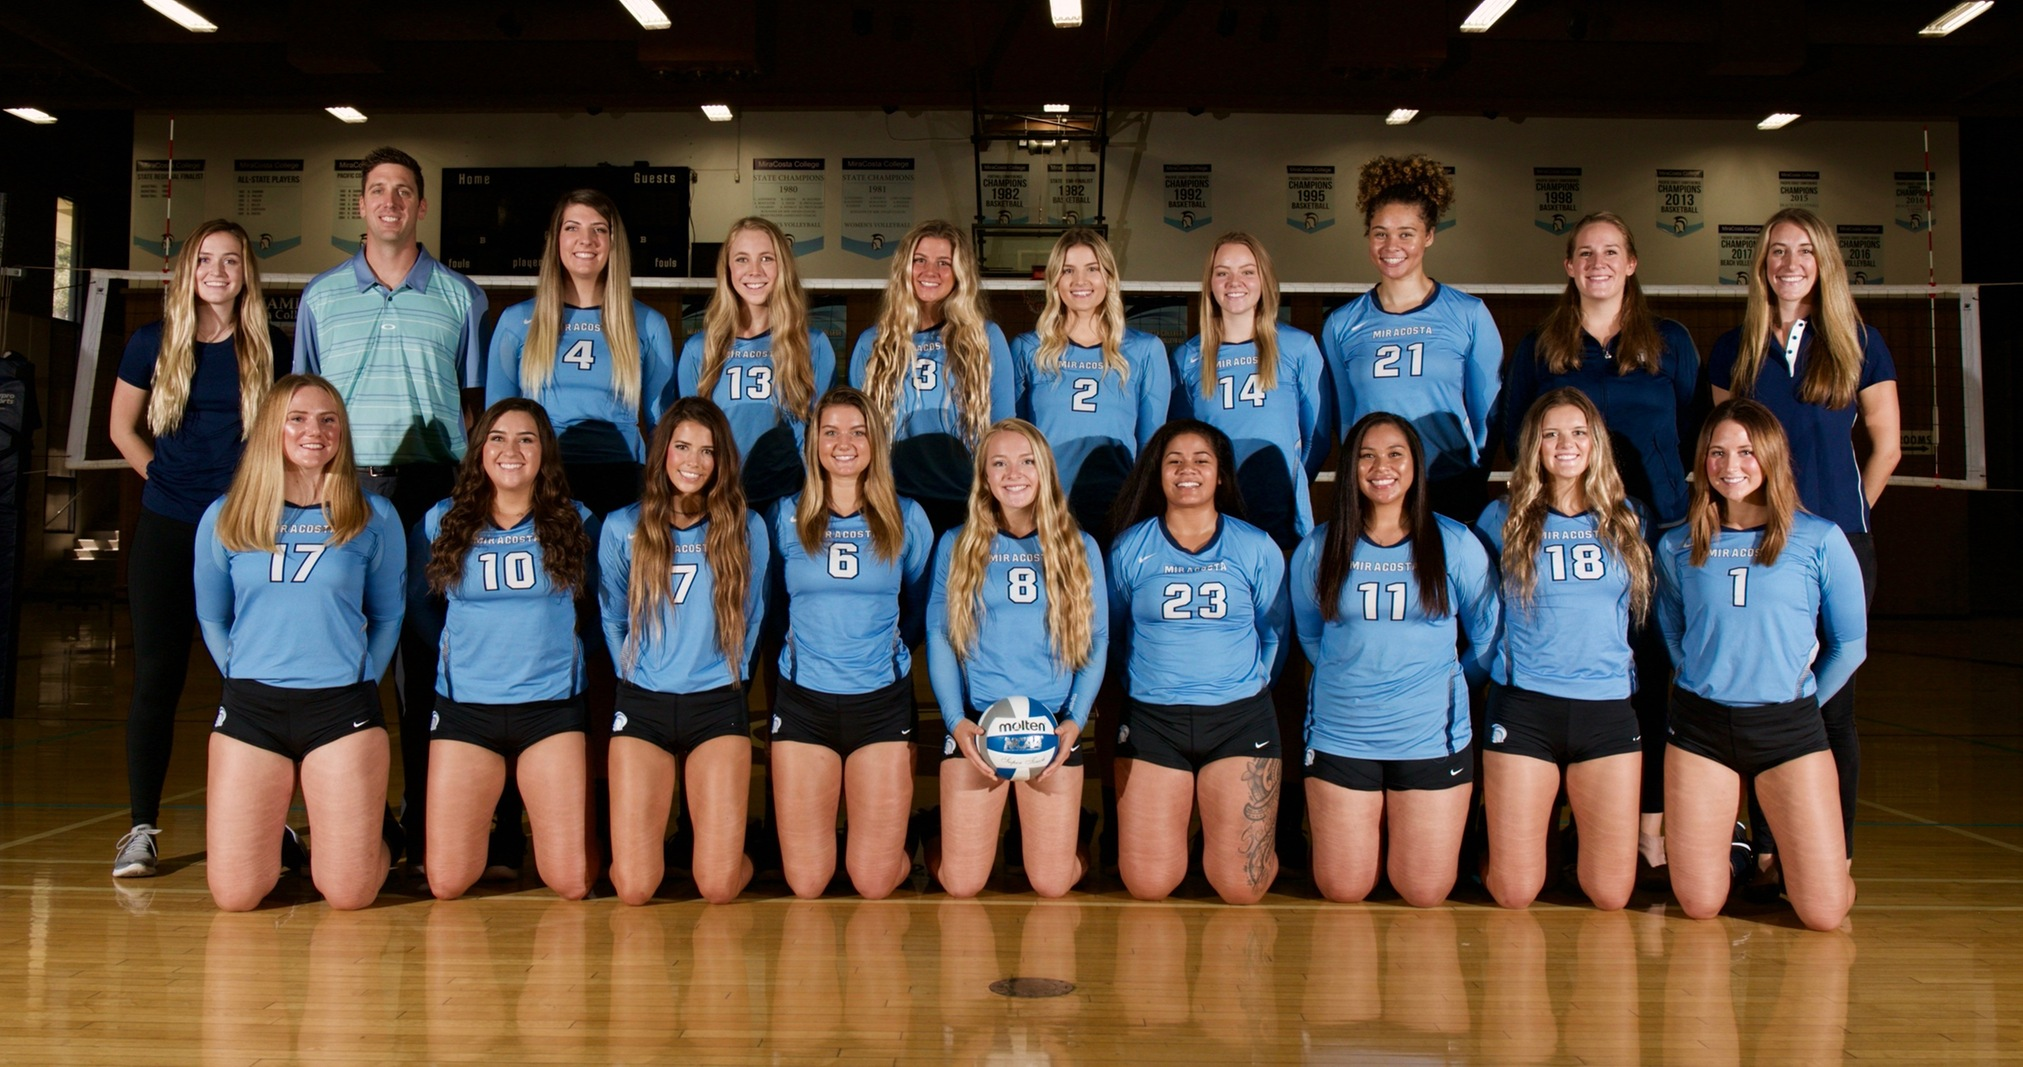 Women's Volleyball team picture.